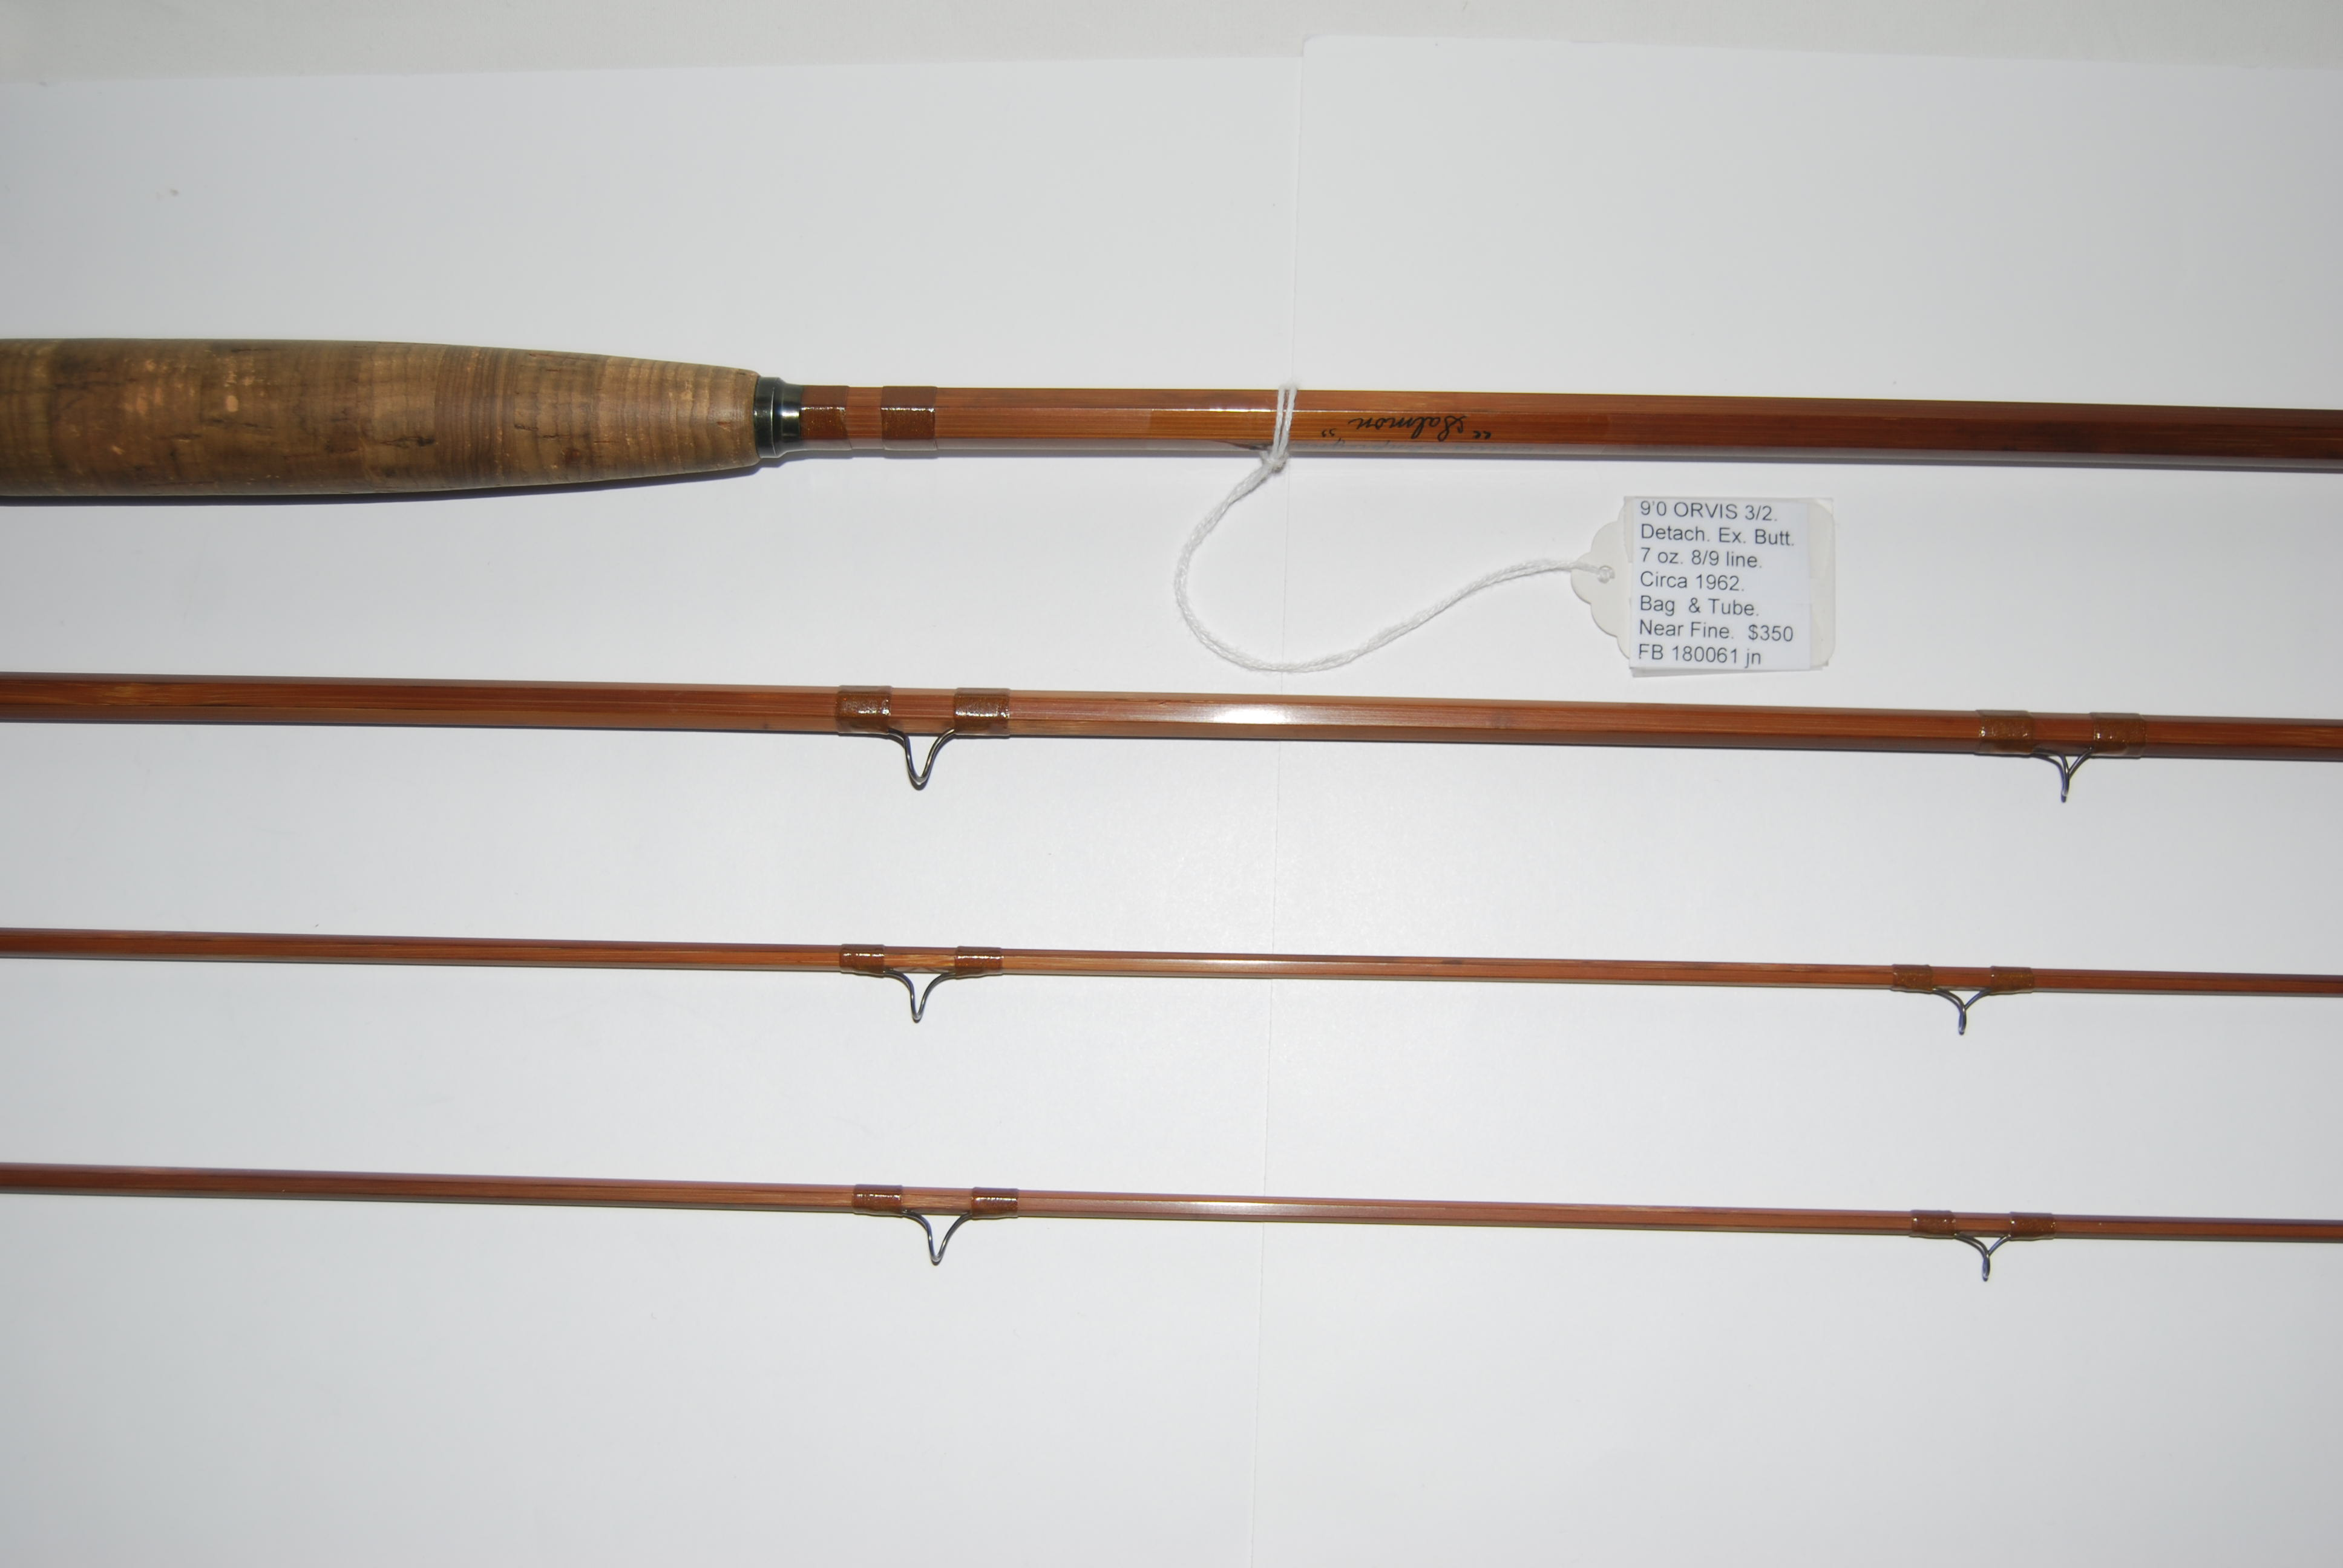 "Image for  9'0"" ORVIS SALMON 3/2. With 5 in. Detachable Extension Butt. 7 oz. #8/9 line. Serial No. 32274] [1962]]"